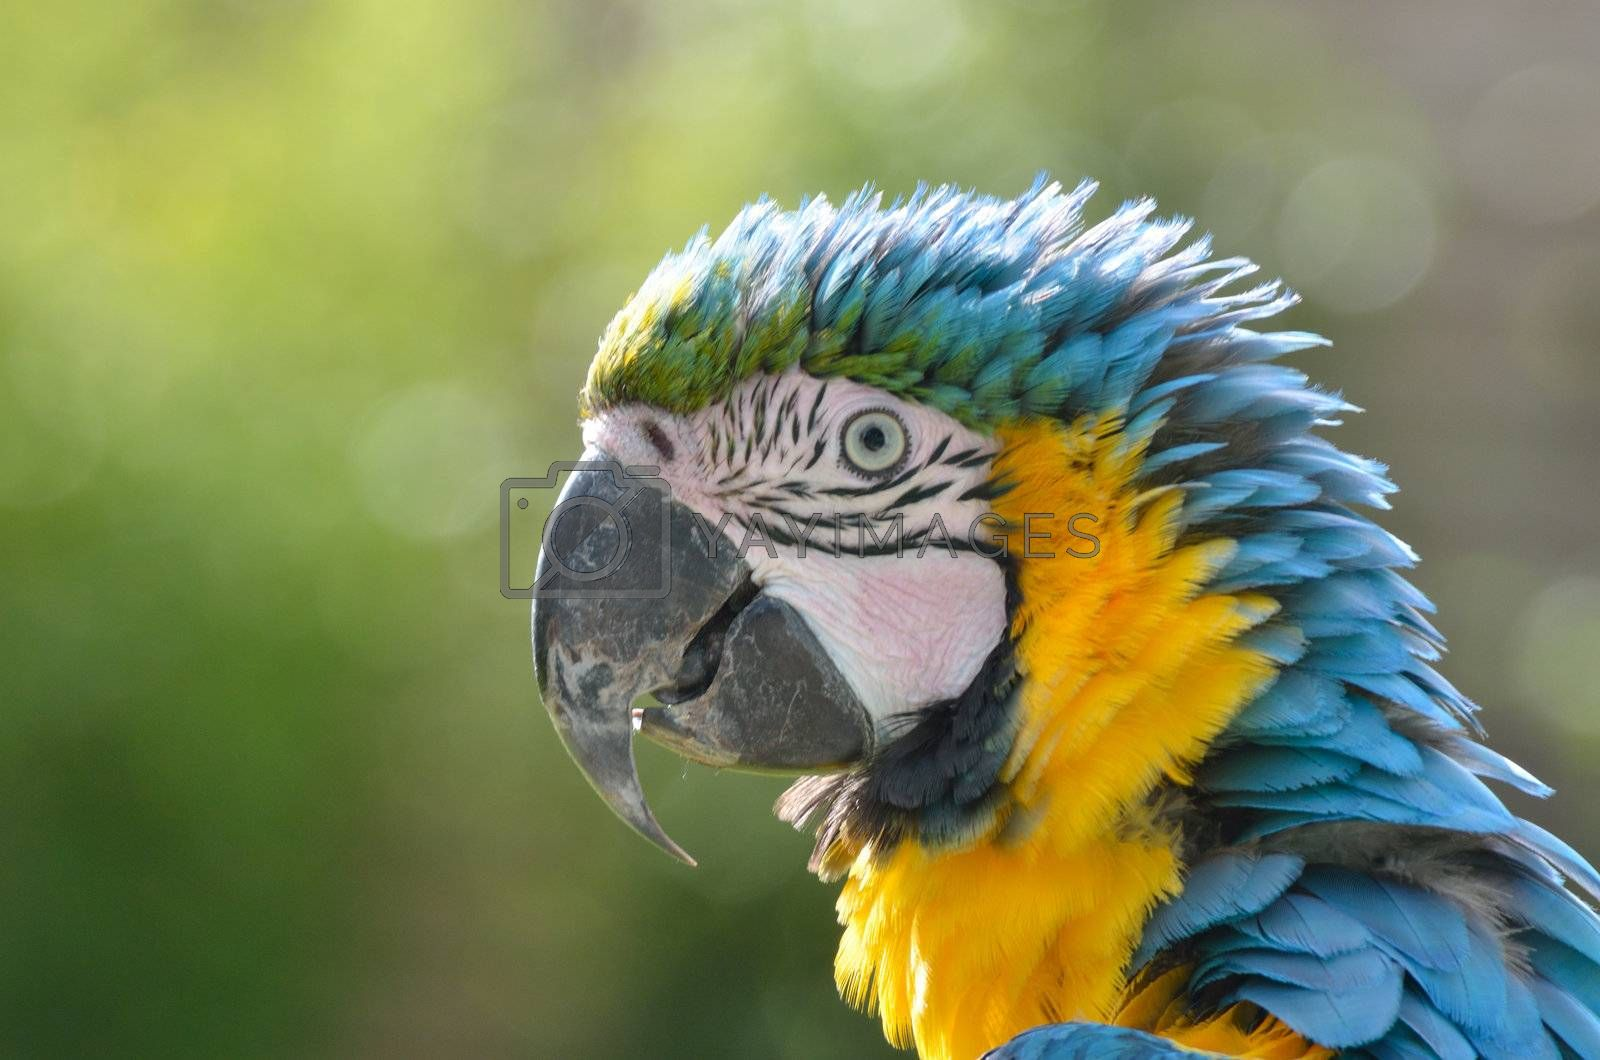 Blue and yellow Parrot Head